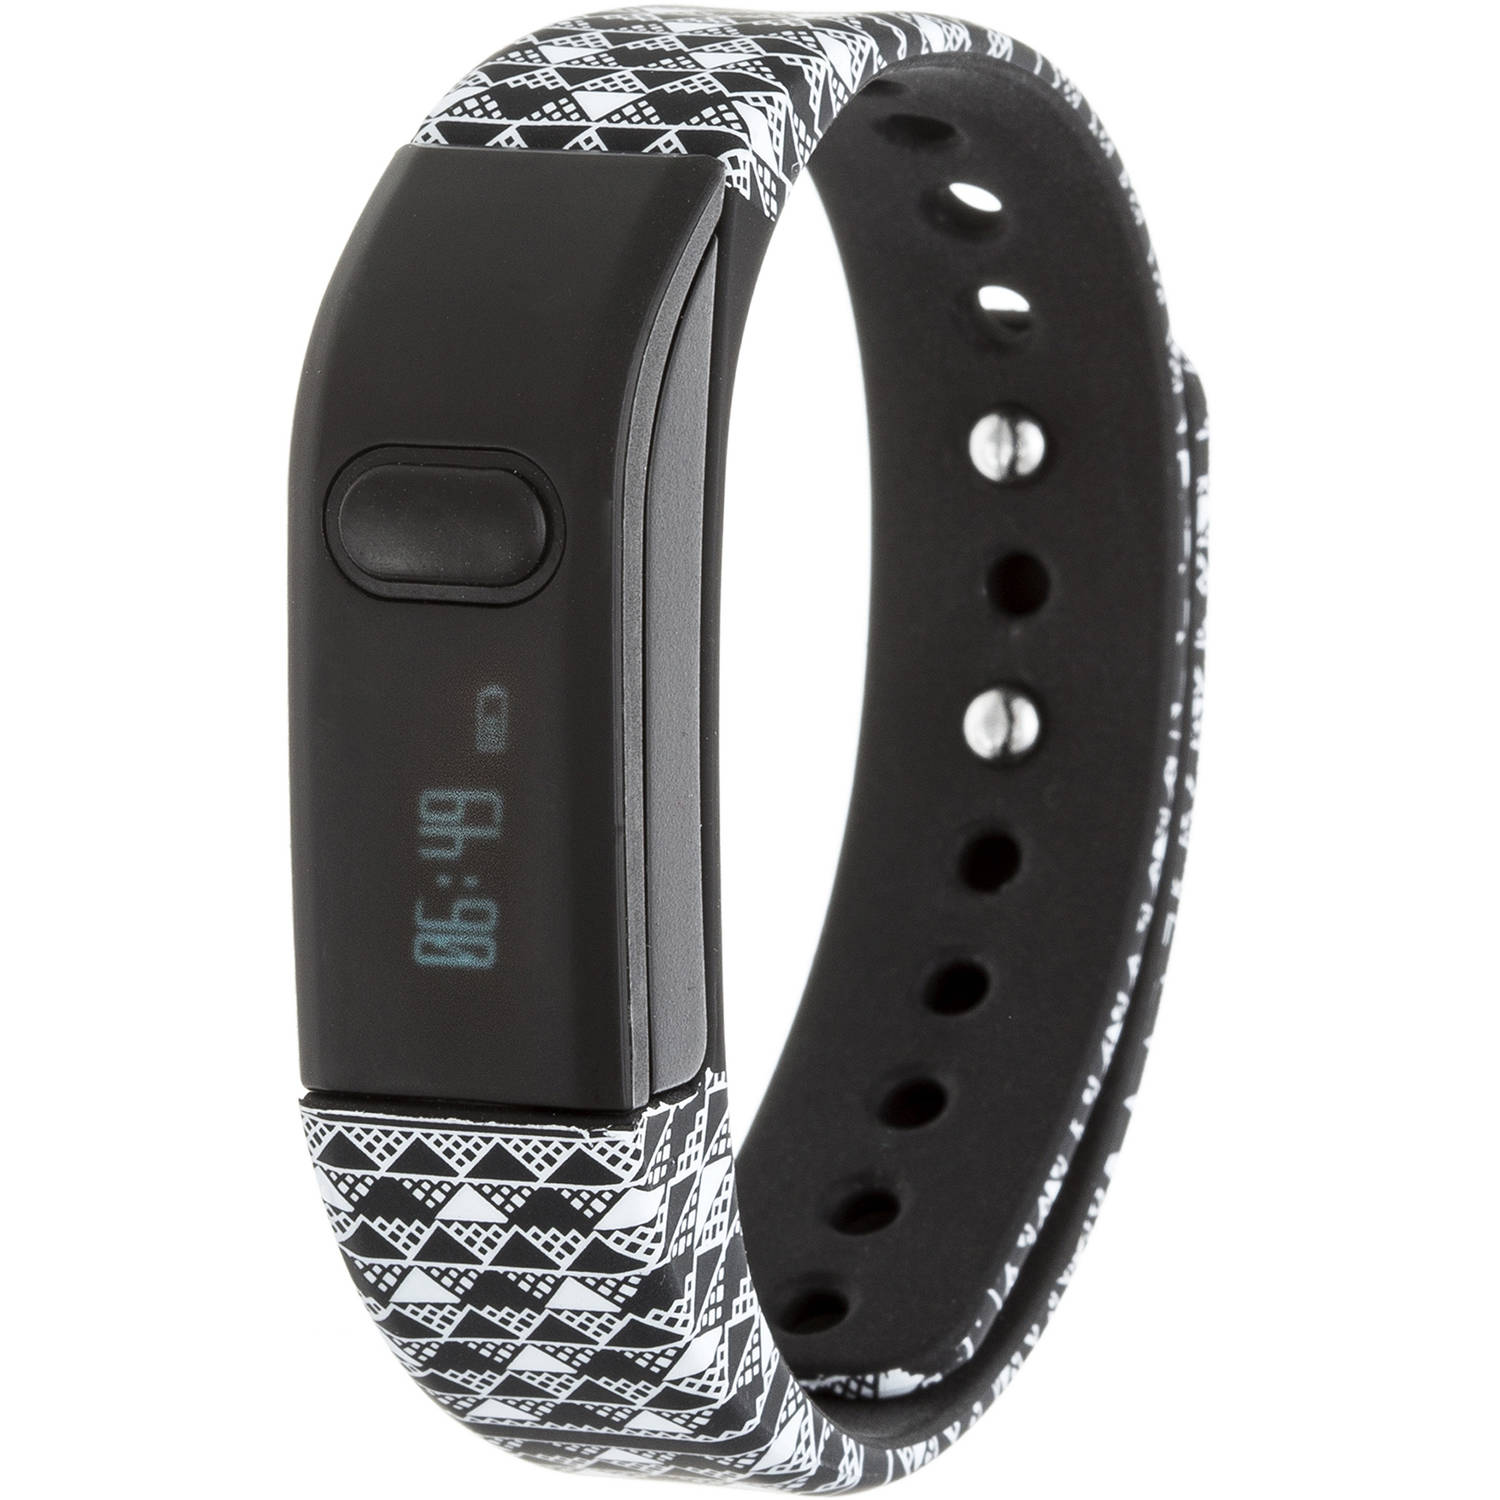 RBX Printed Activity Tracker with Caller ID and Notification Preview, Multiple Colors Available